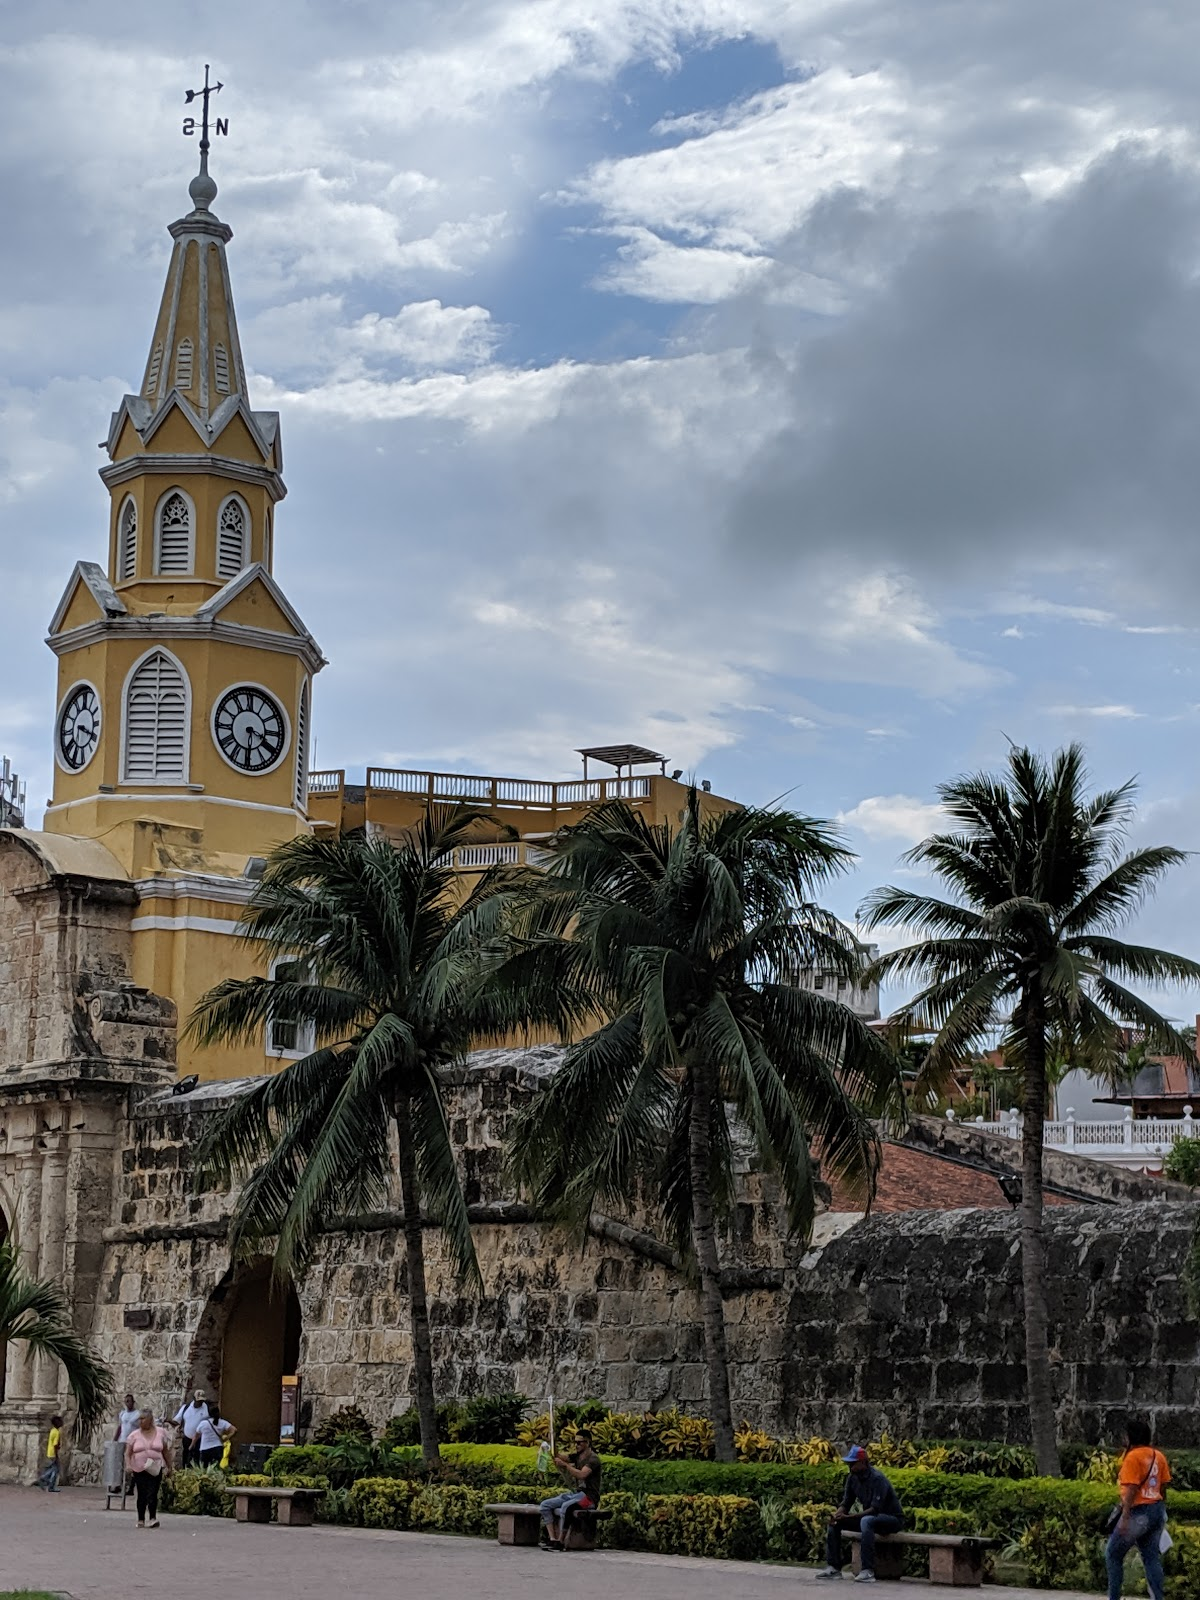 The clocktower in Cartagena, Colombia.